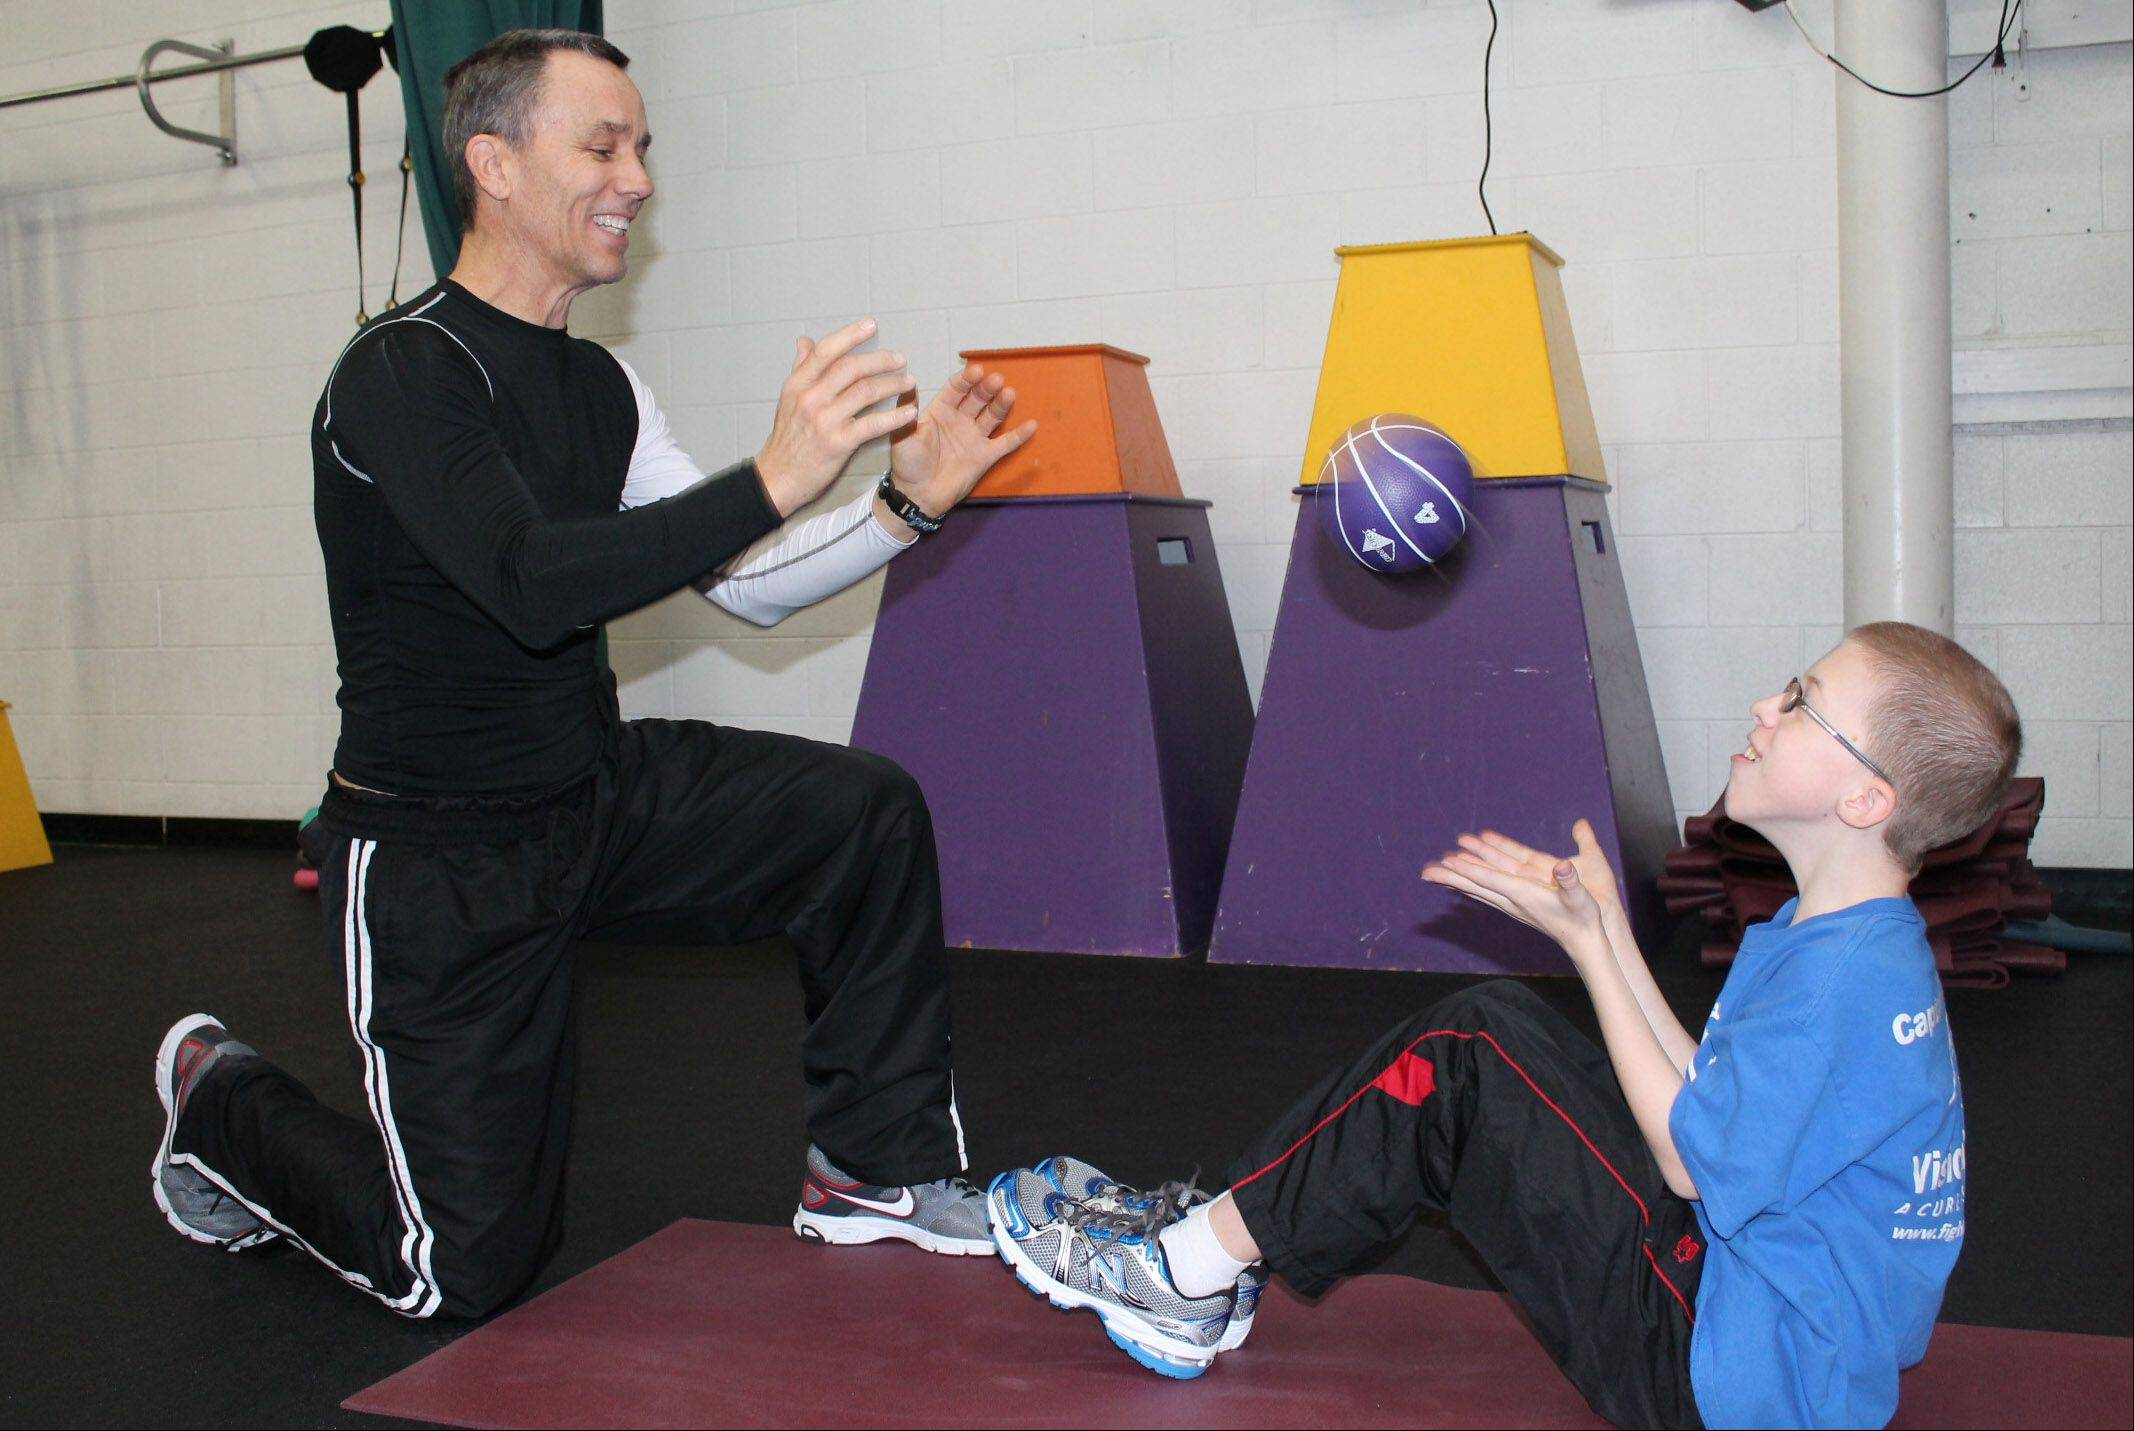 Jim O'Hara, left, works out with Nathan Hayes at Focus Martial Arts and Fitness in Lake in the Hills. Nathan has been named the co-youth chair of the eighth annual Foundation Fighting Blindness VisionWalk, which will take place June 9 in Elk Grove Village.